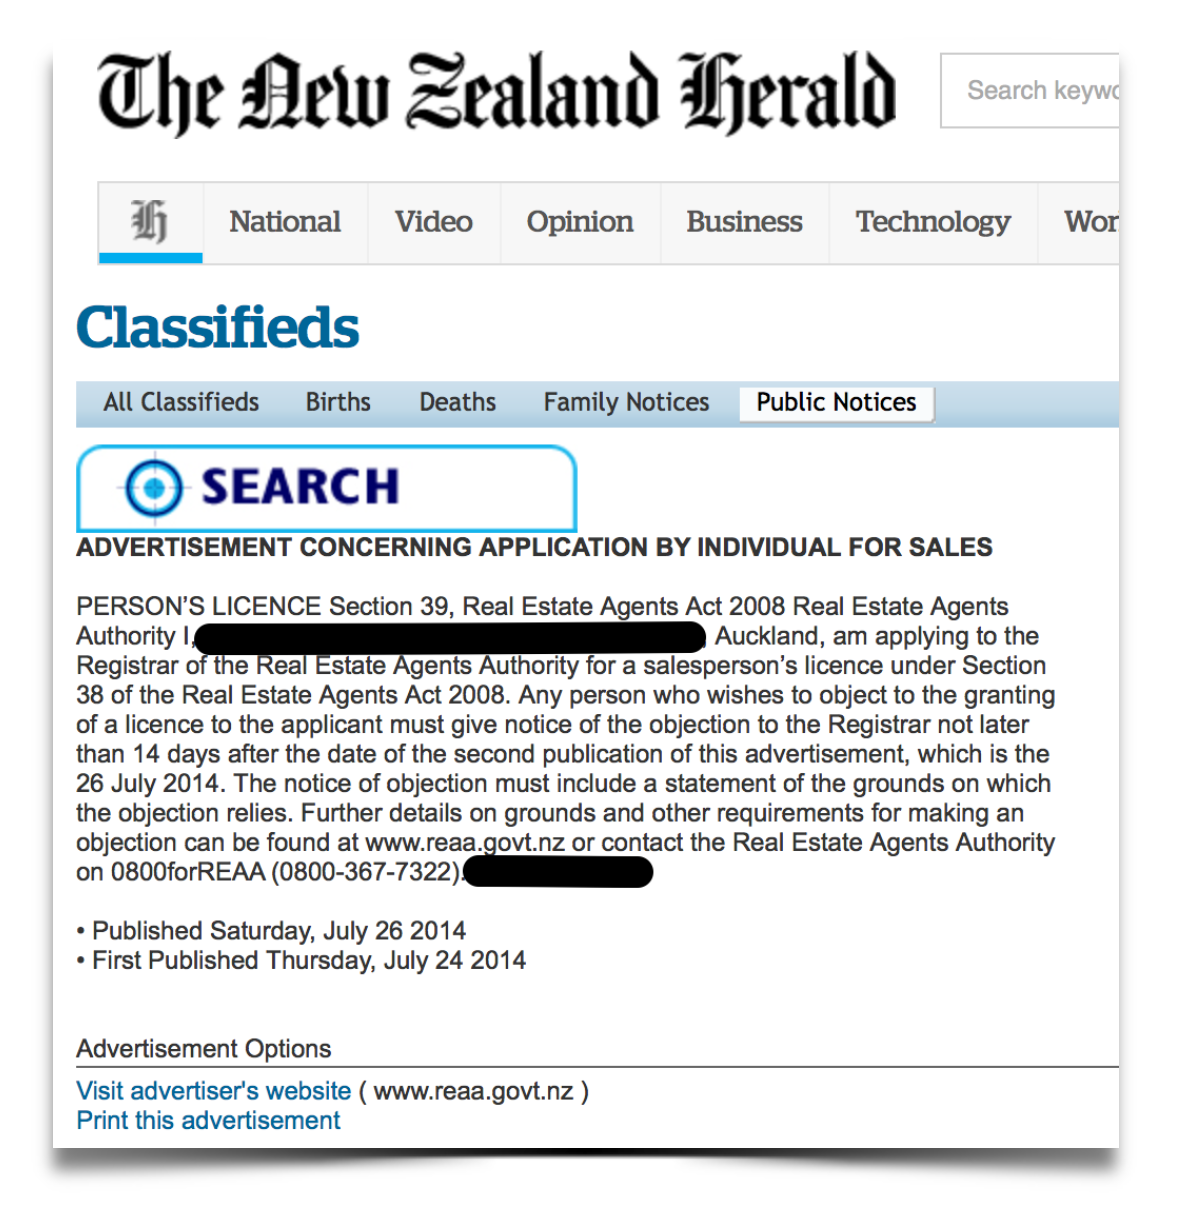 NZ_Herald_Classifieds__Public_Notices.png